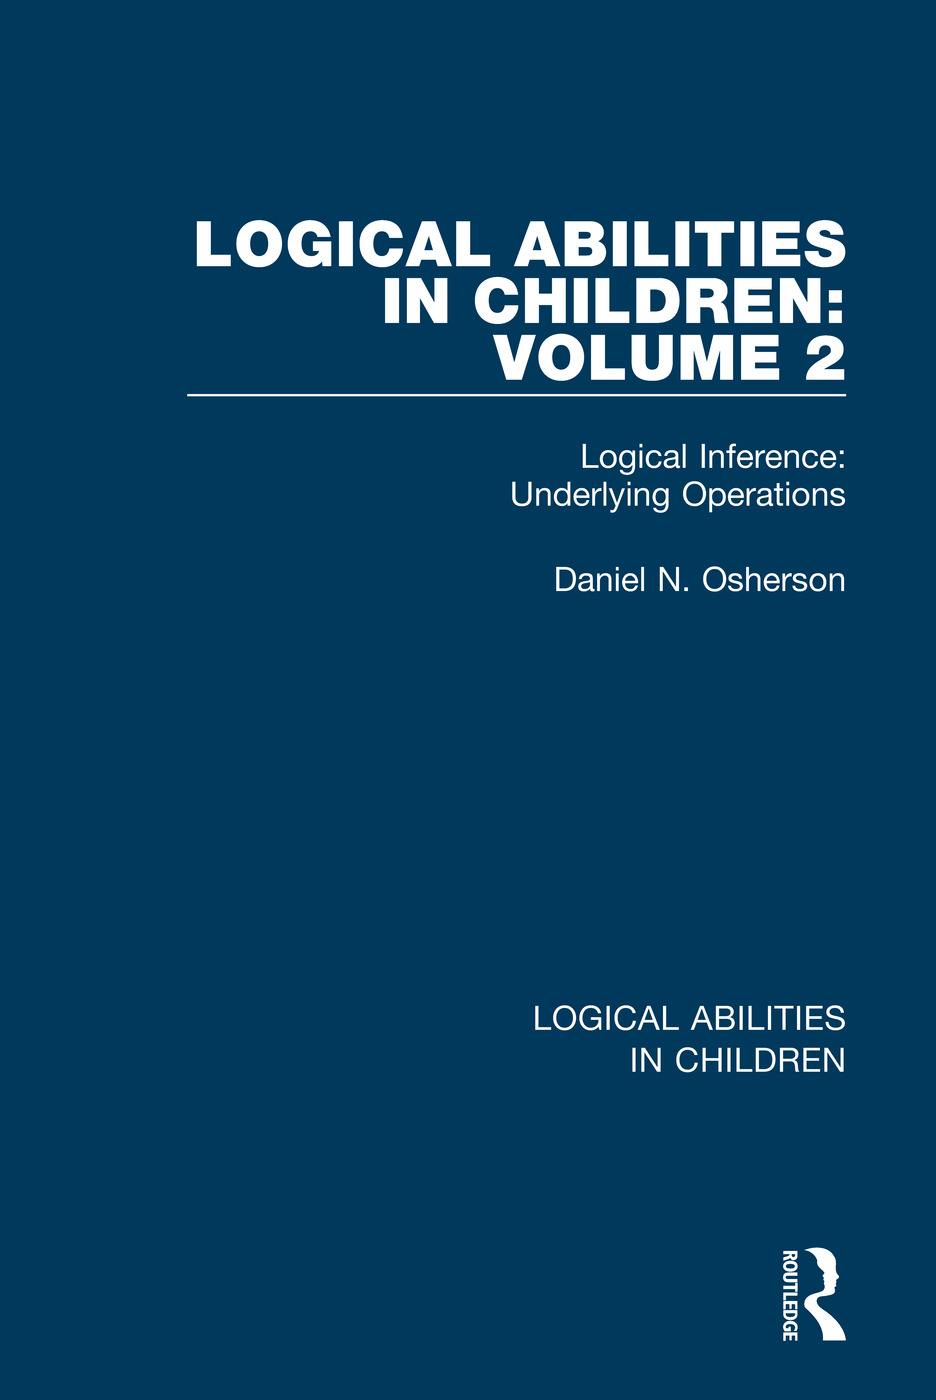 Logical Abilities in Children: Volume 2: Logical Inference: Underlying Operations book cover